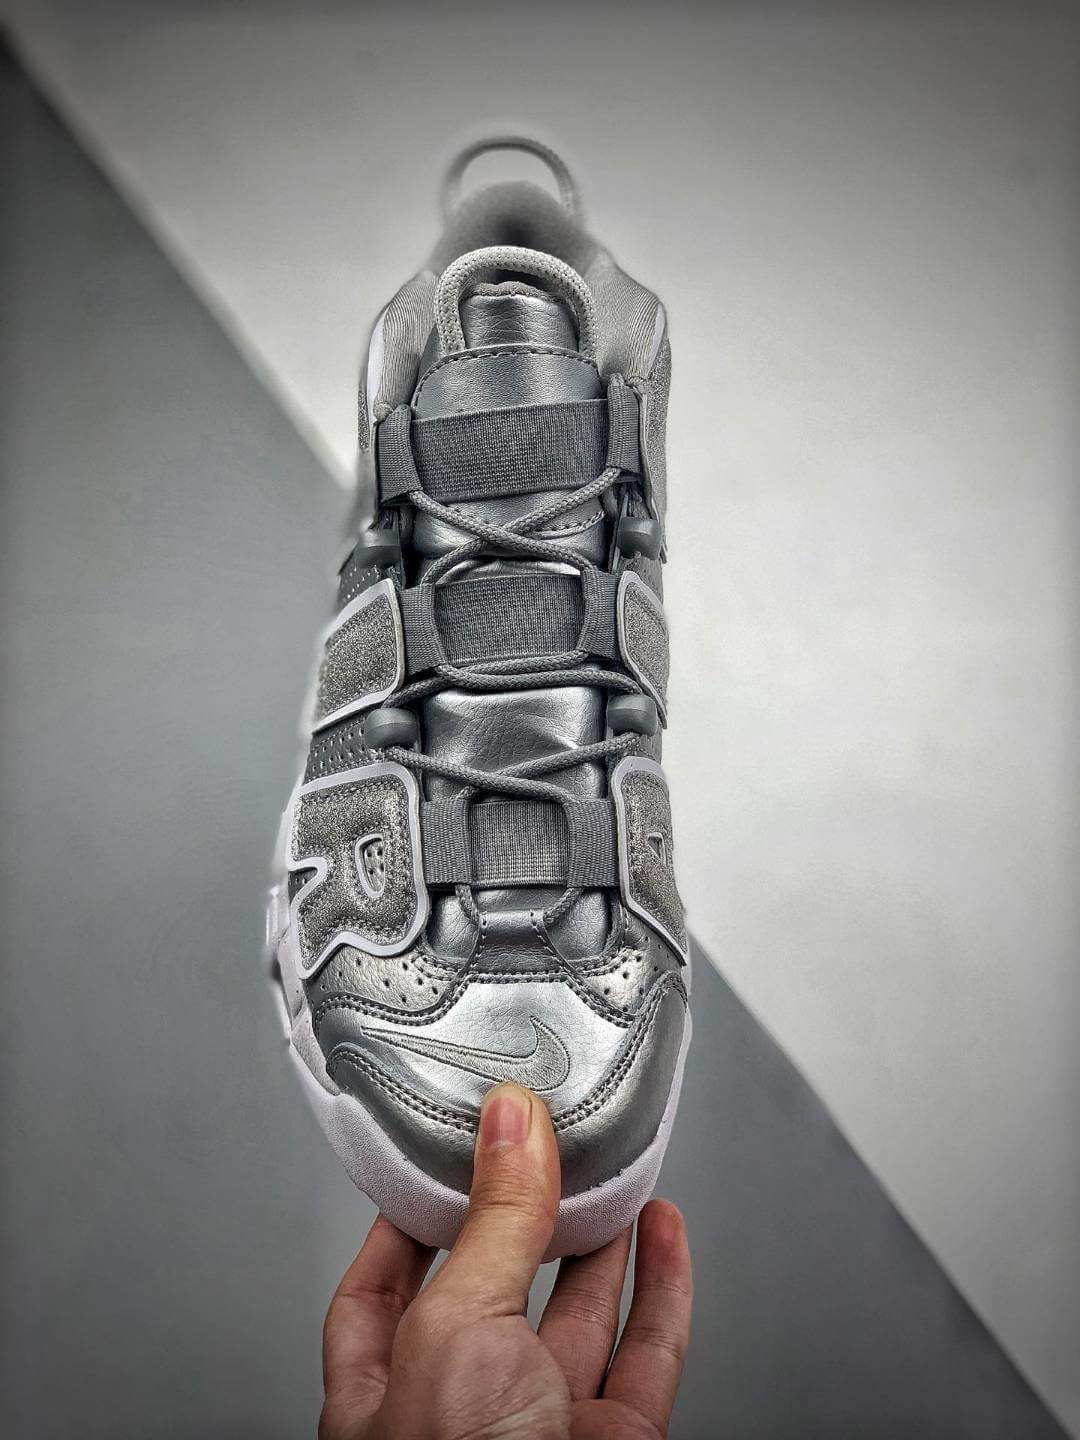 The Nike Air More Uptempo Loud and Clear Basketball Shoes Metallic Silver Leather Upper Quality RepSneaker 03